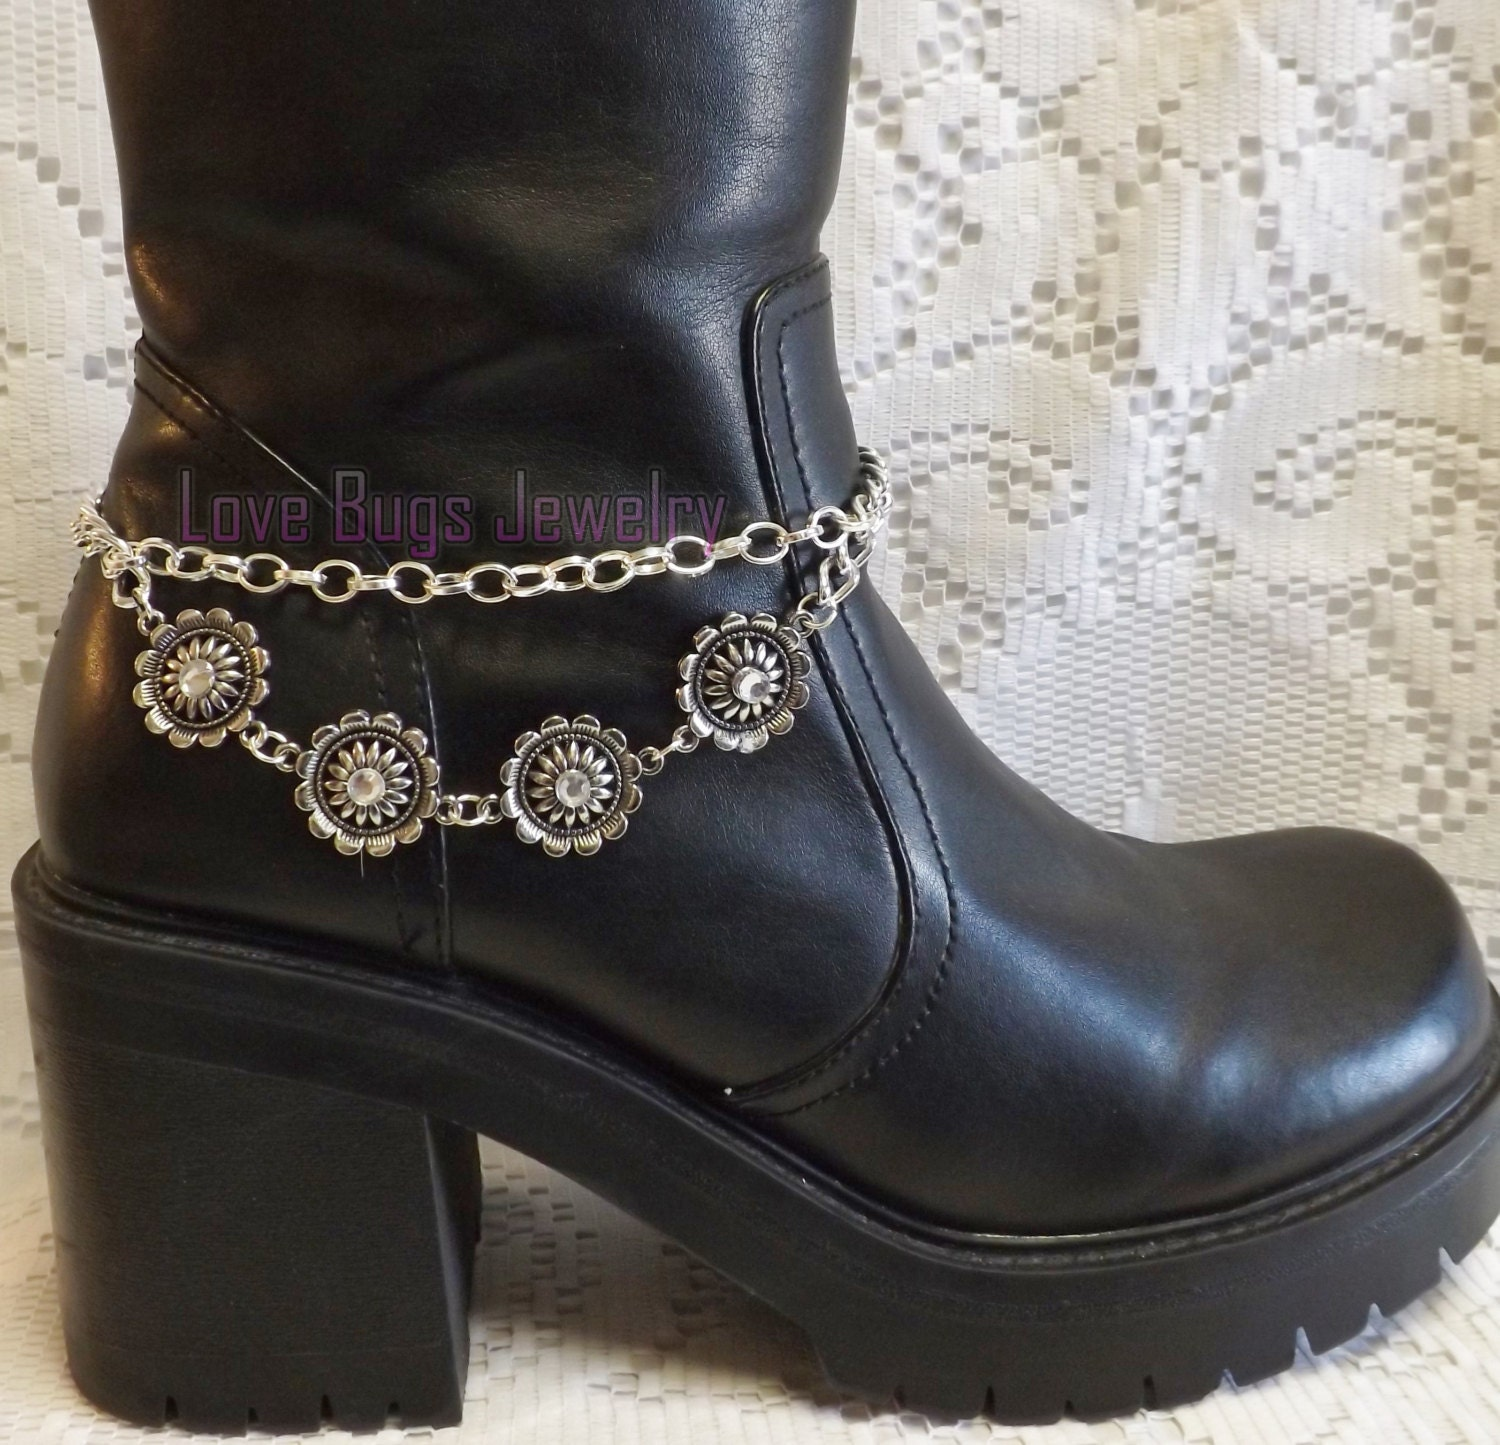 silver boot jewelry boot bracelet boot bling boot jewelry